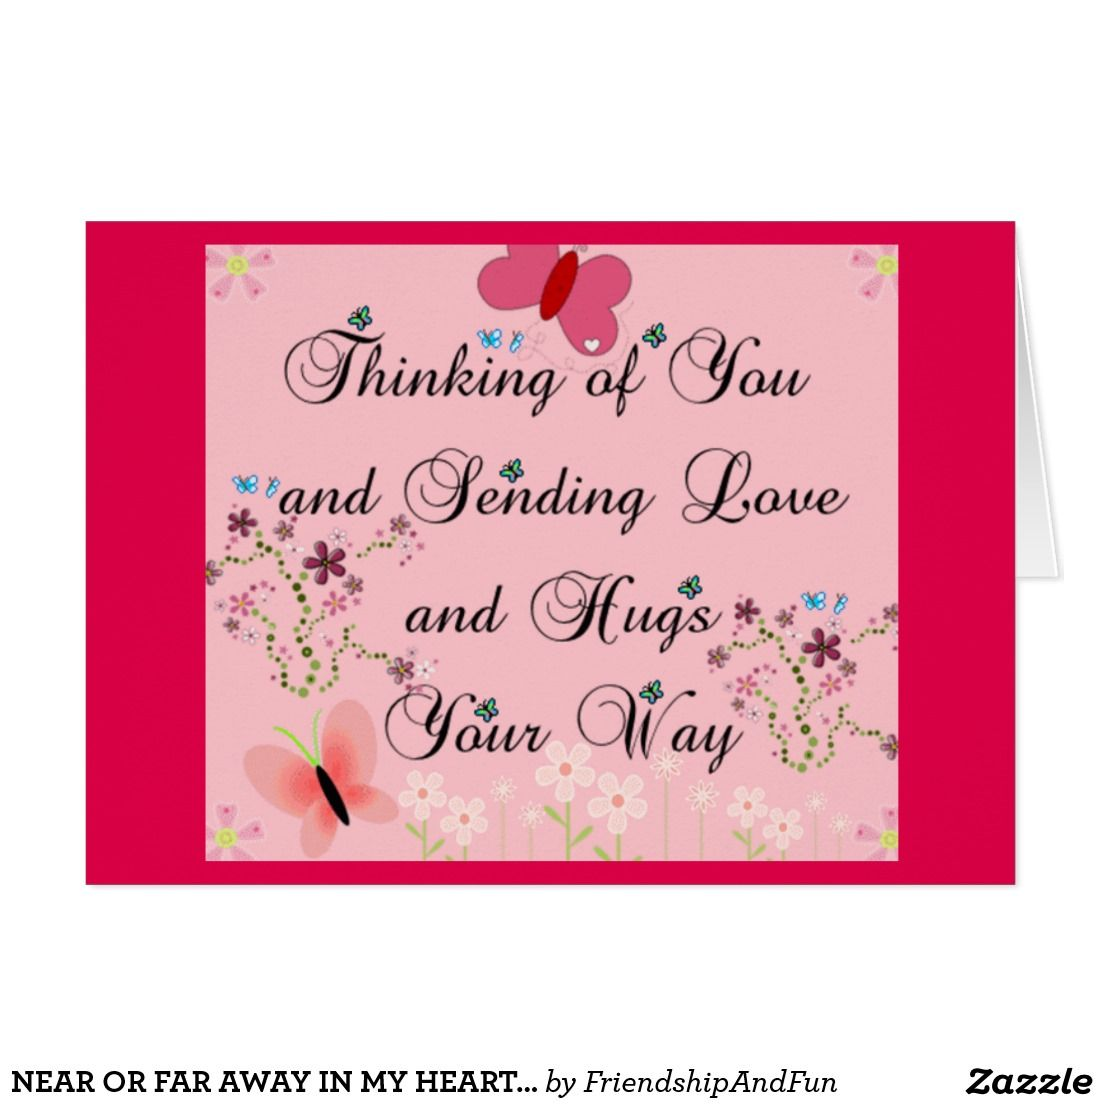 Near Or Far Away In My Heart U Will Aways Stay Zazzle Com In 2021 Thinking Of You Quotes Love Hug Hug Quotes